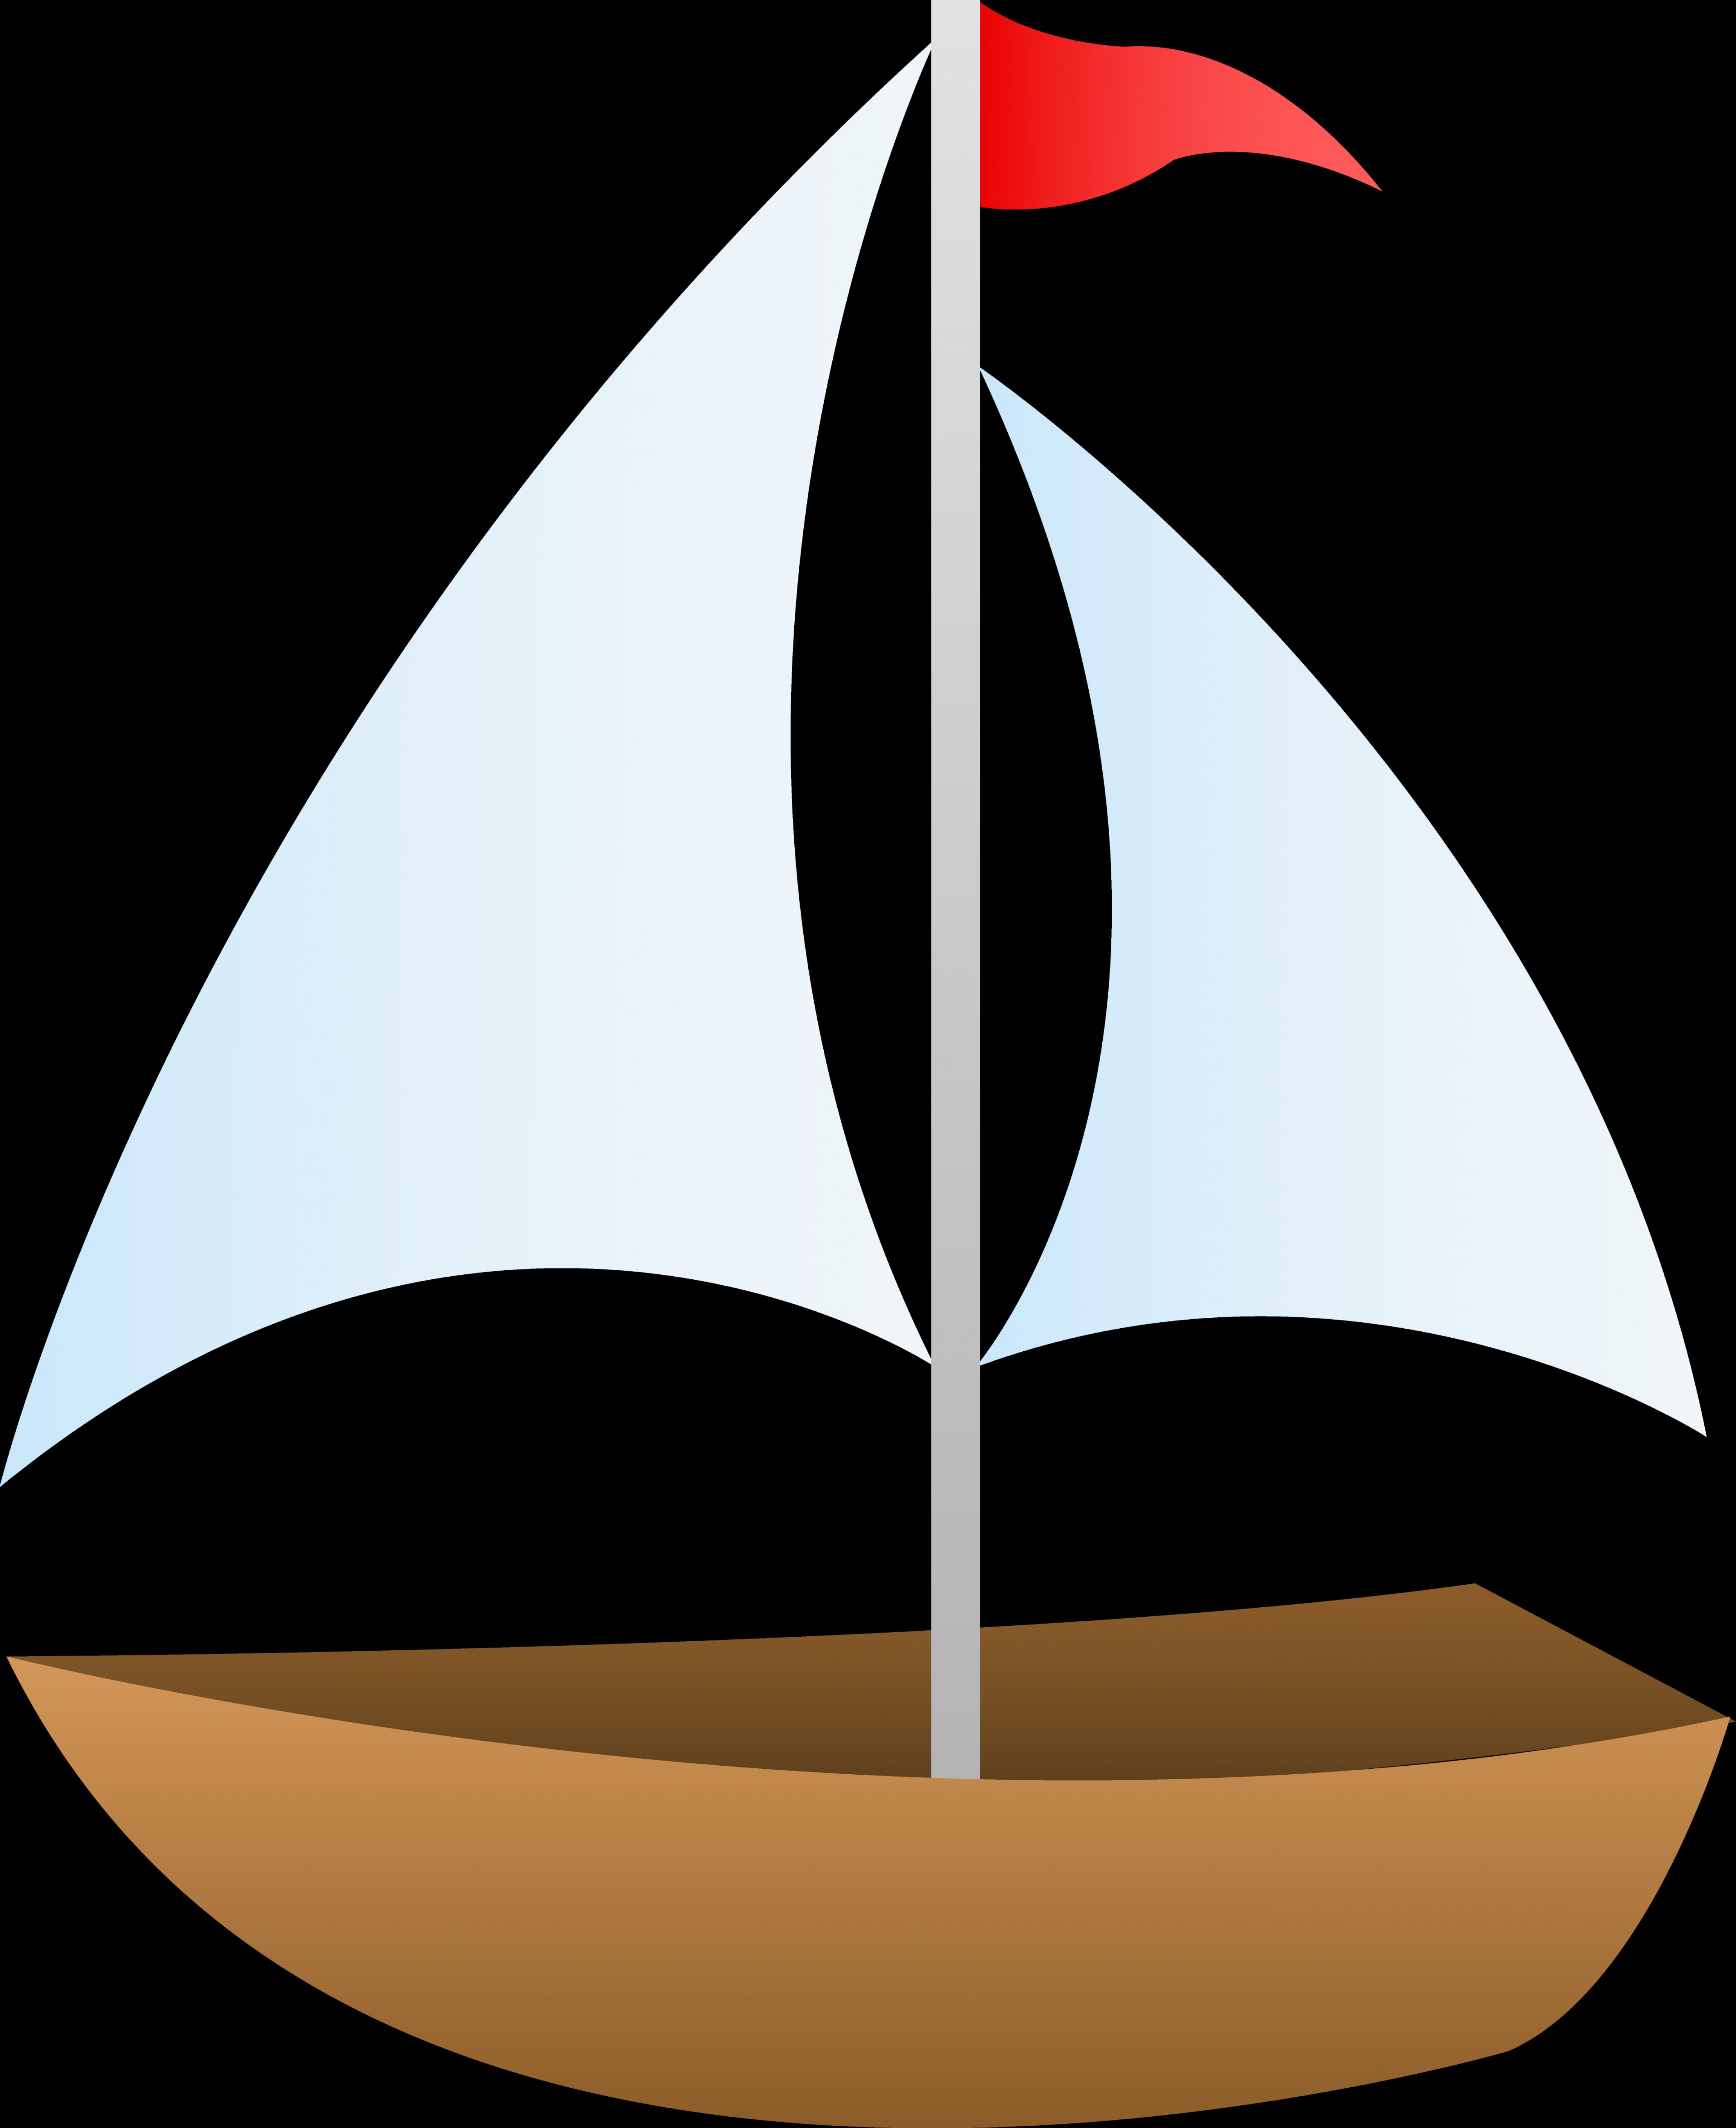 Vector Cartoon Free Clip Art: Helpful Cartoon Sailboat Pictures Little With Red Flag Free Clip Art